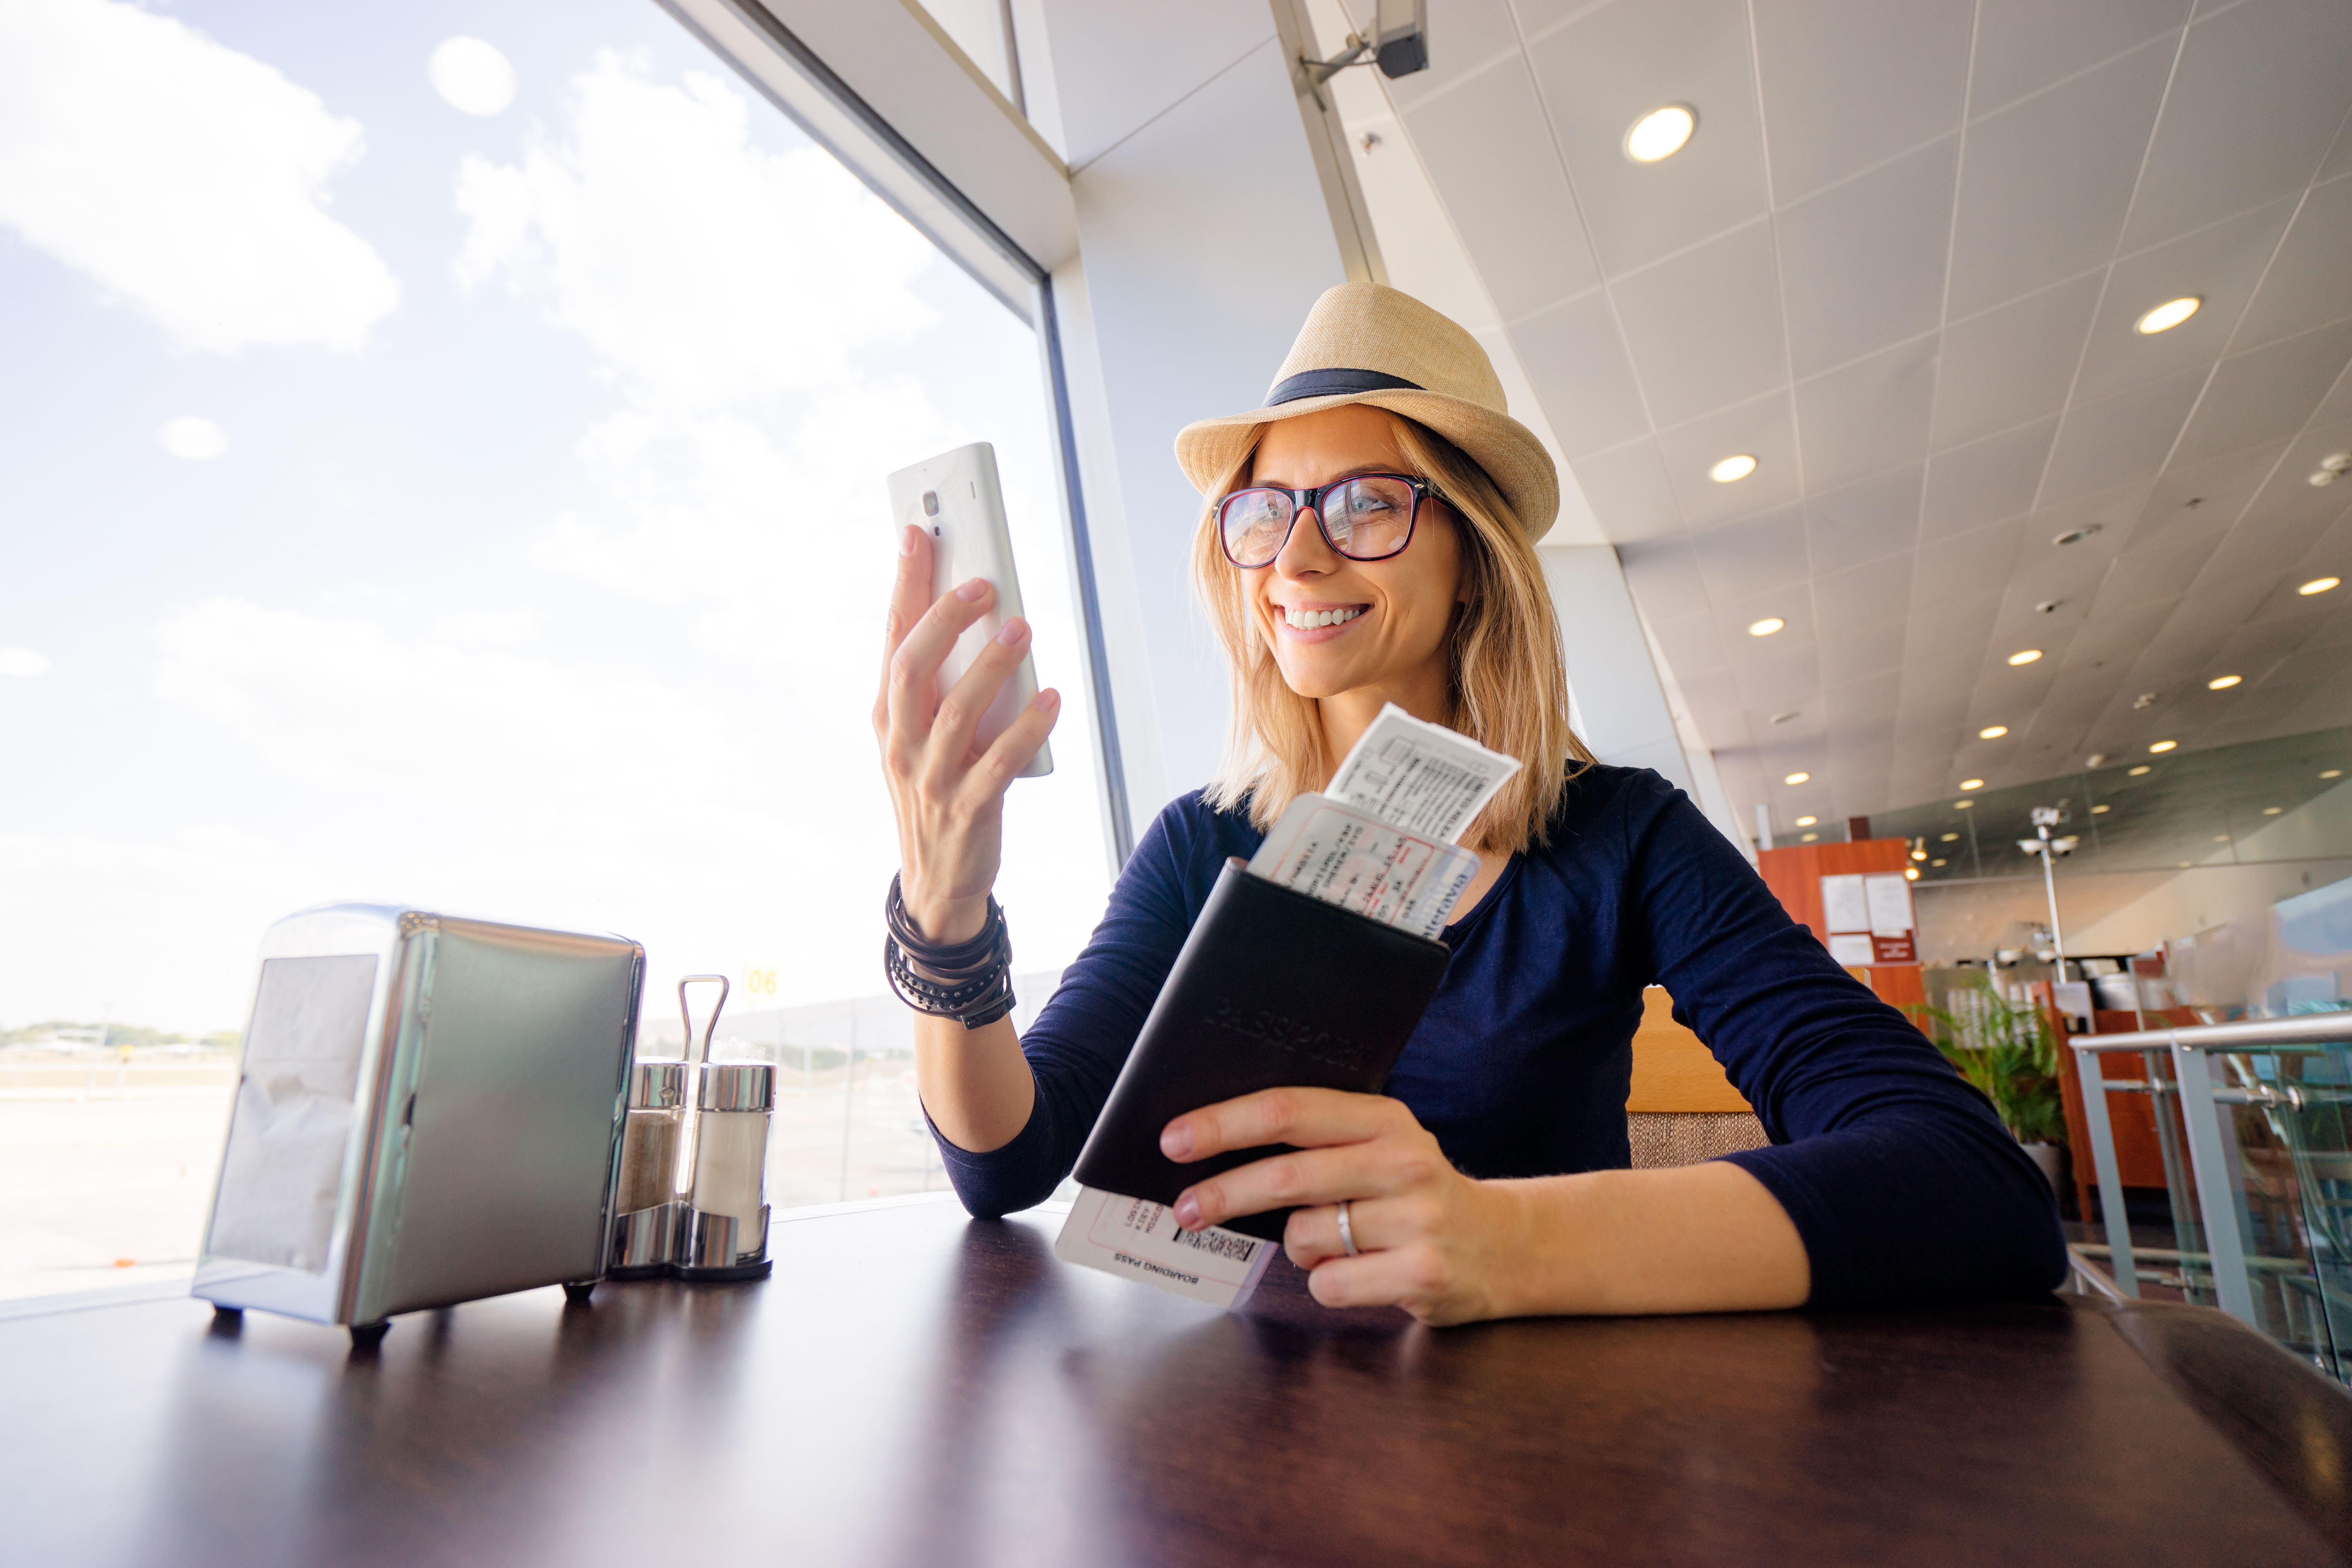 Woman using smartphone with passport on her hand